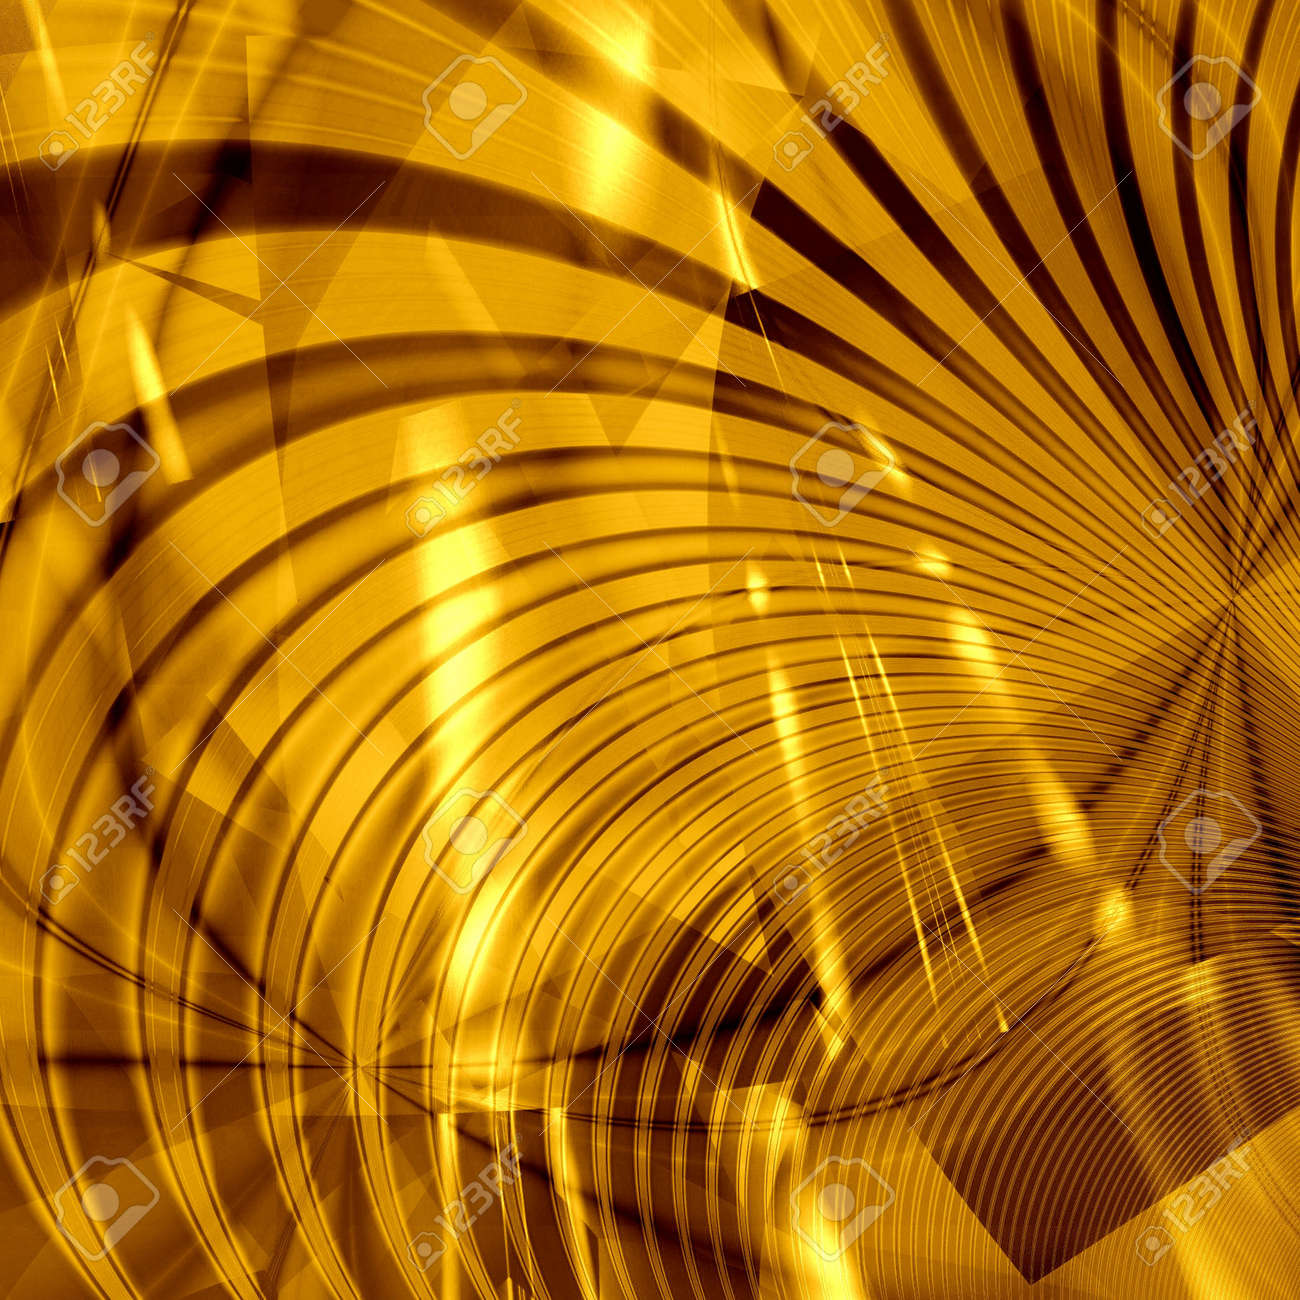 Computer Generated Golden Abstract Wallpaper